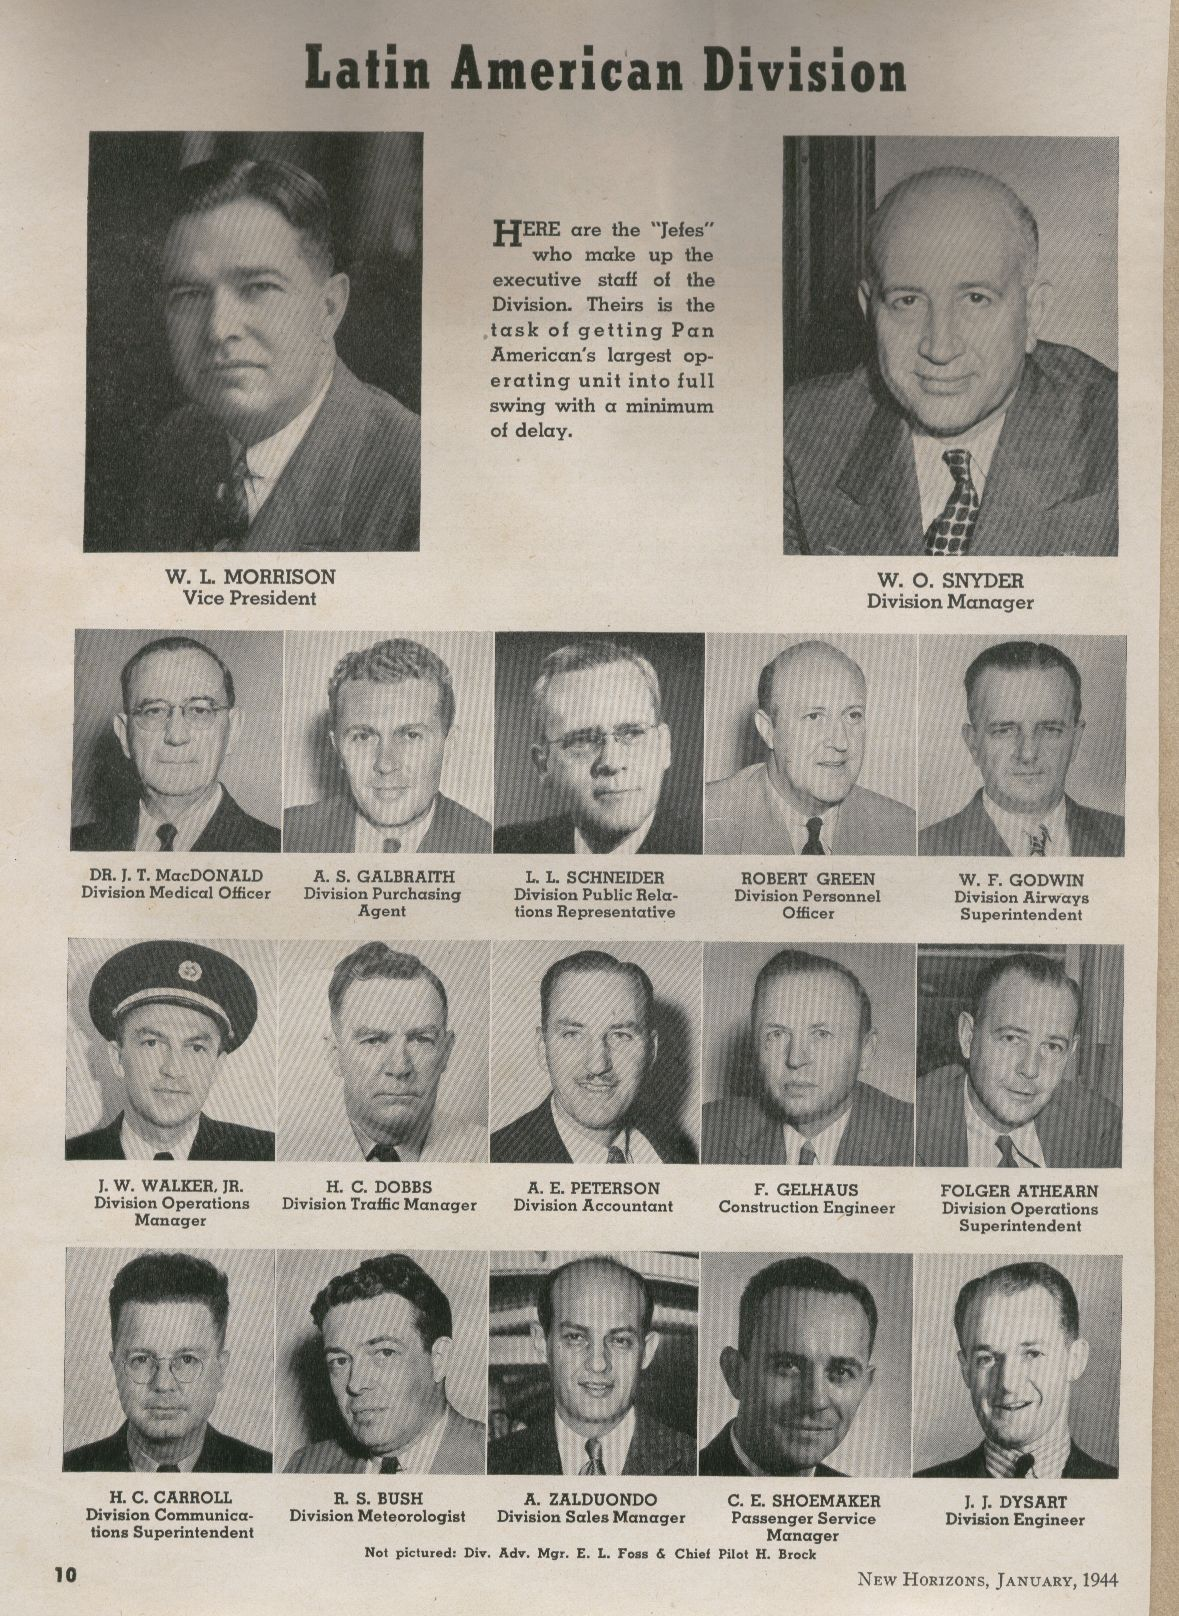 1944 head shots of Pan Am's senior management for the Latin America division.